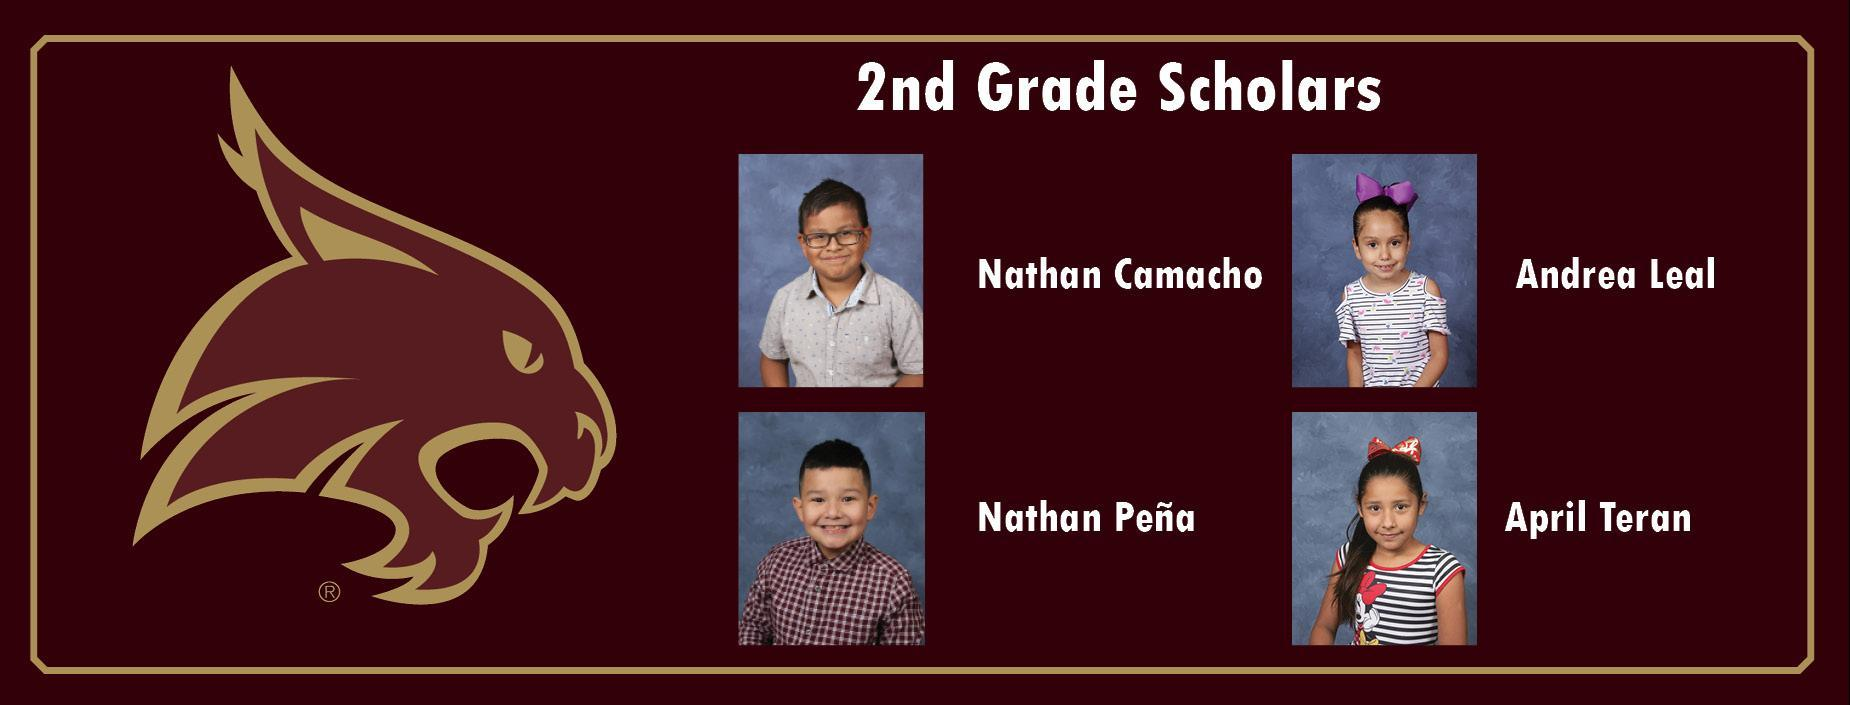 picture of 2nd grade scholars